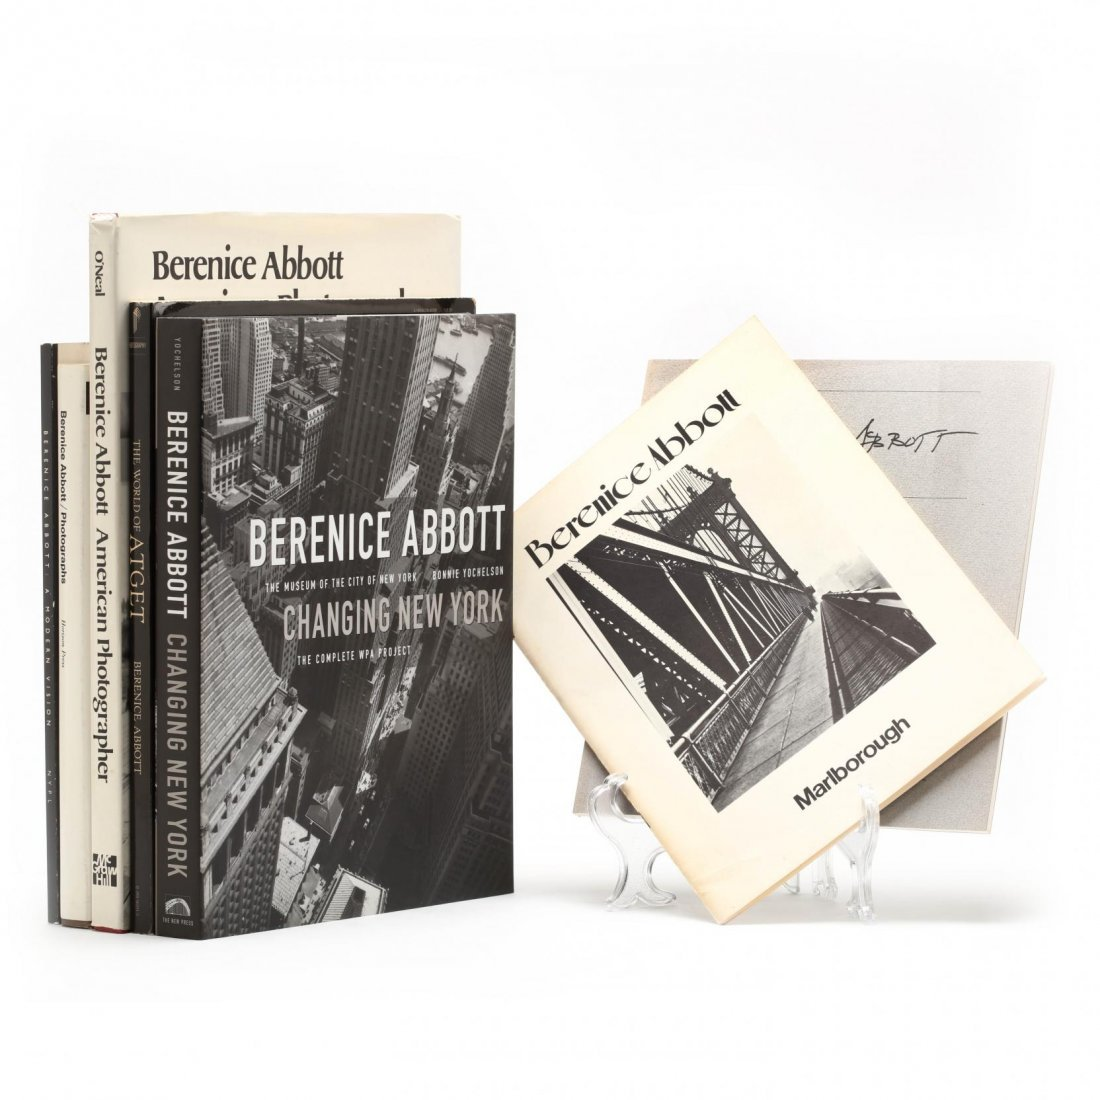 Seven Titles on Berenice Abbott